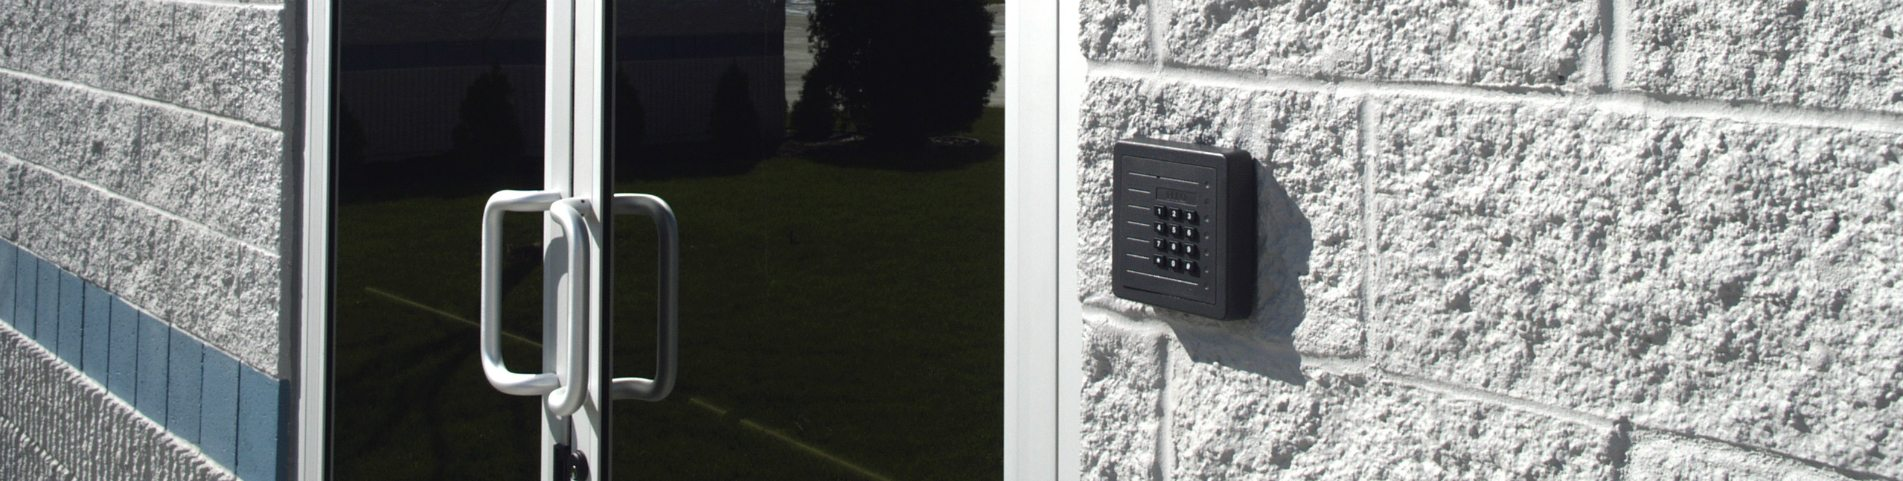 Access Control Systems Charleston